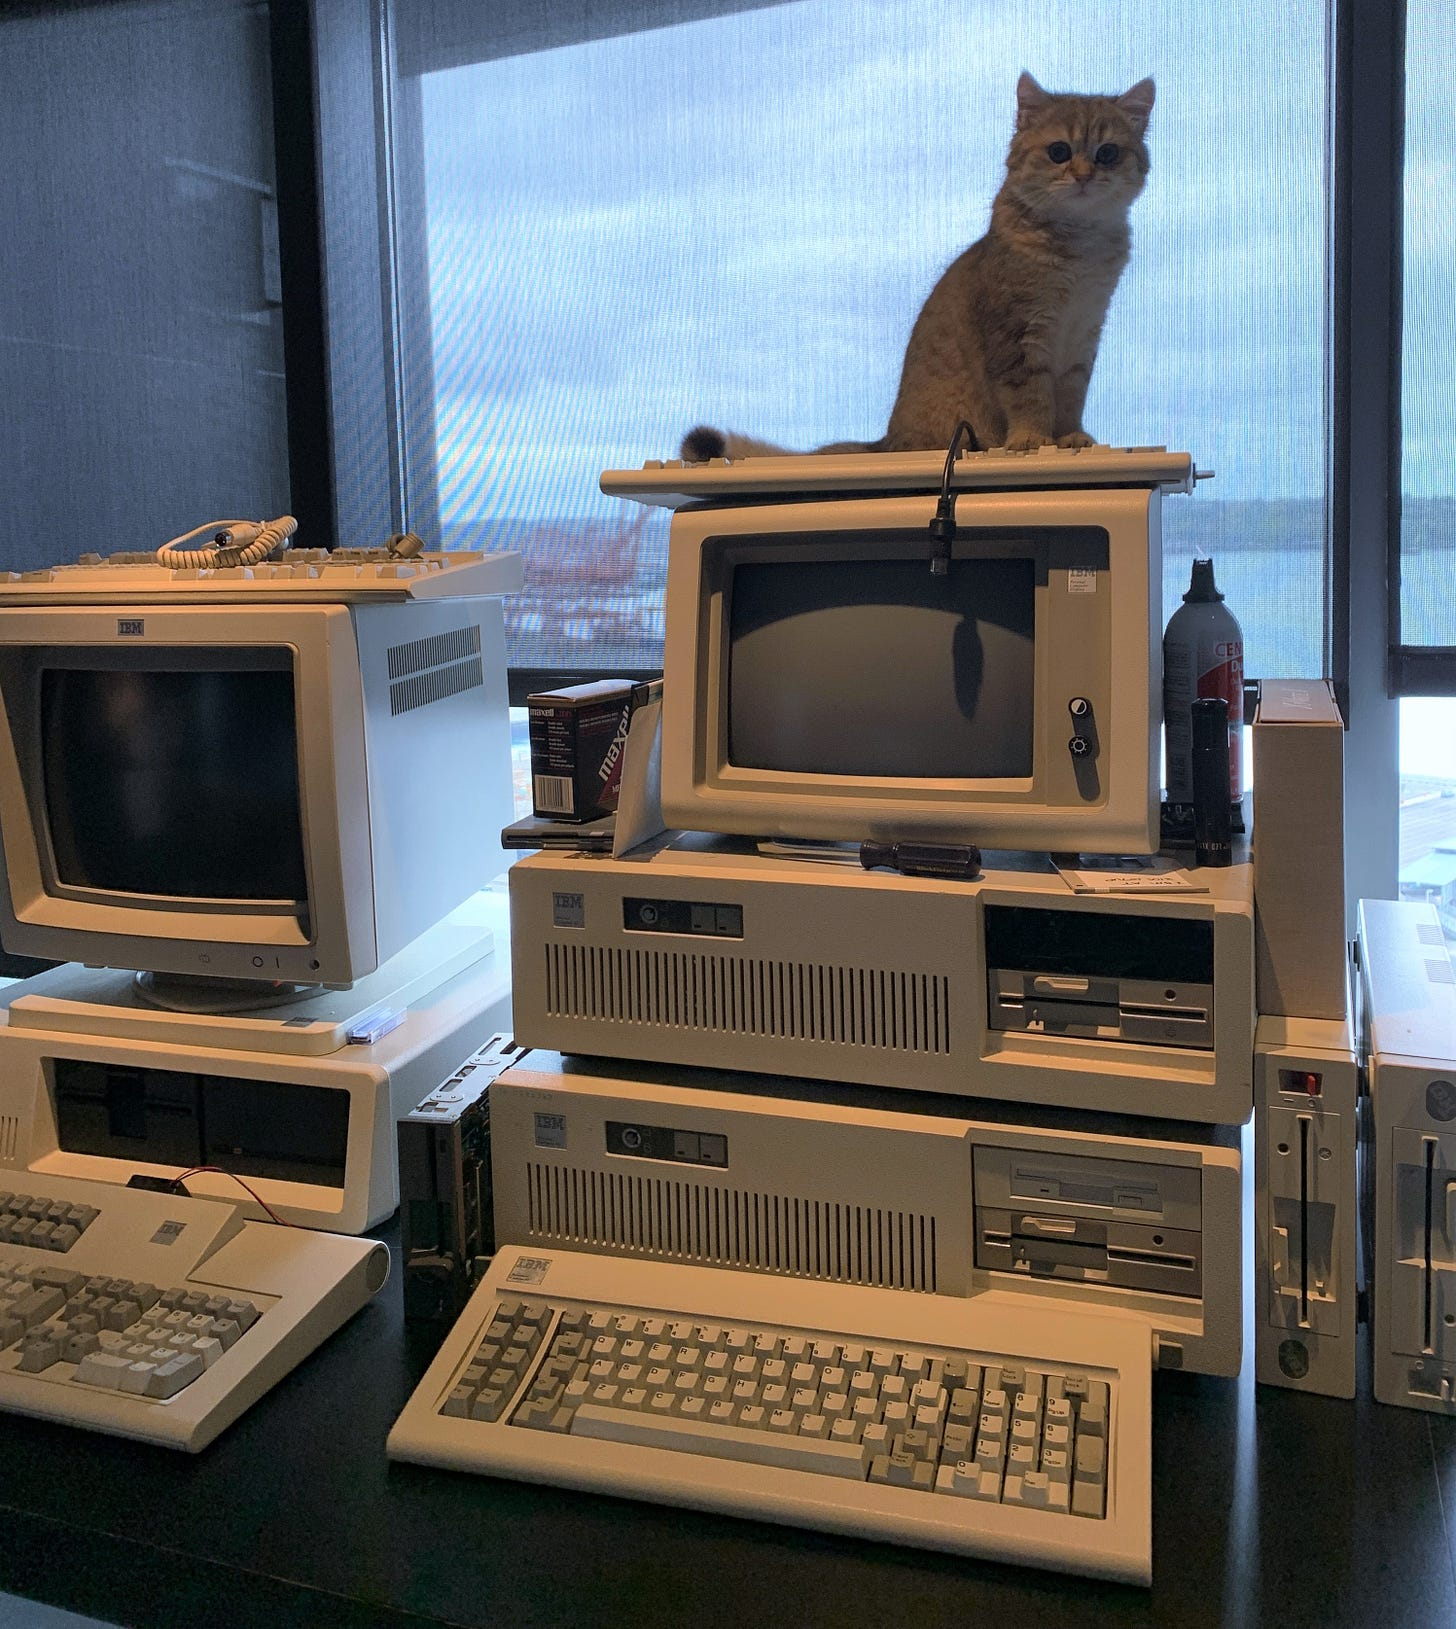 Several IBM PC vintage computers. A small kitten sitting on top of one of the cathode ray tube monitors.